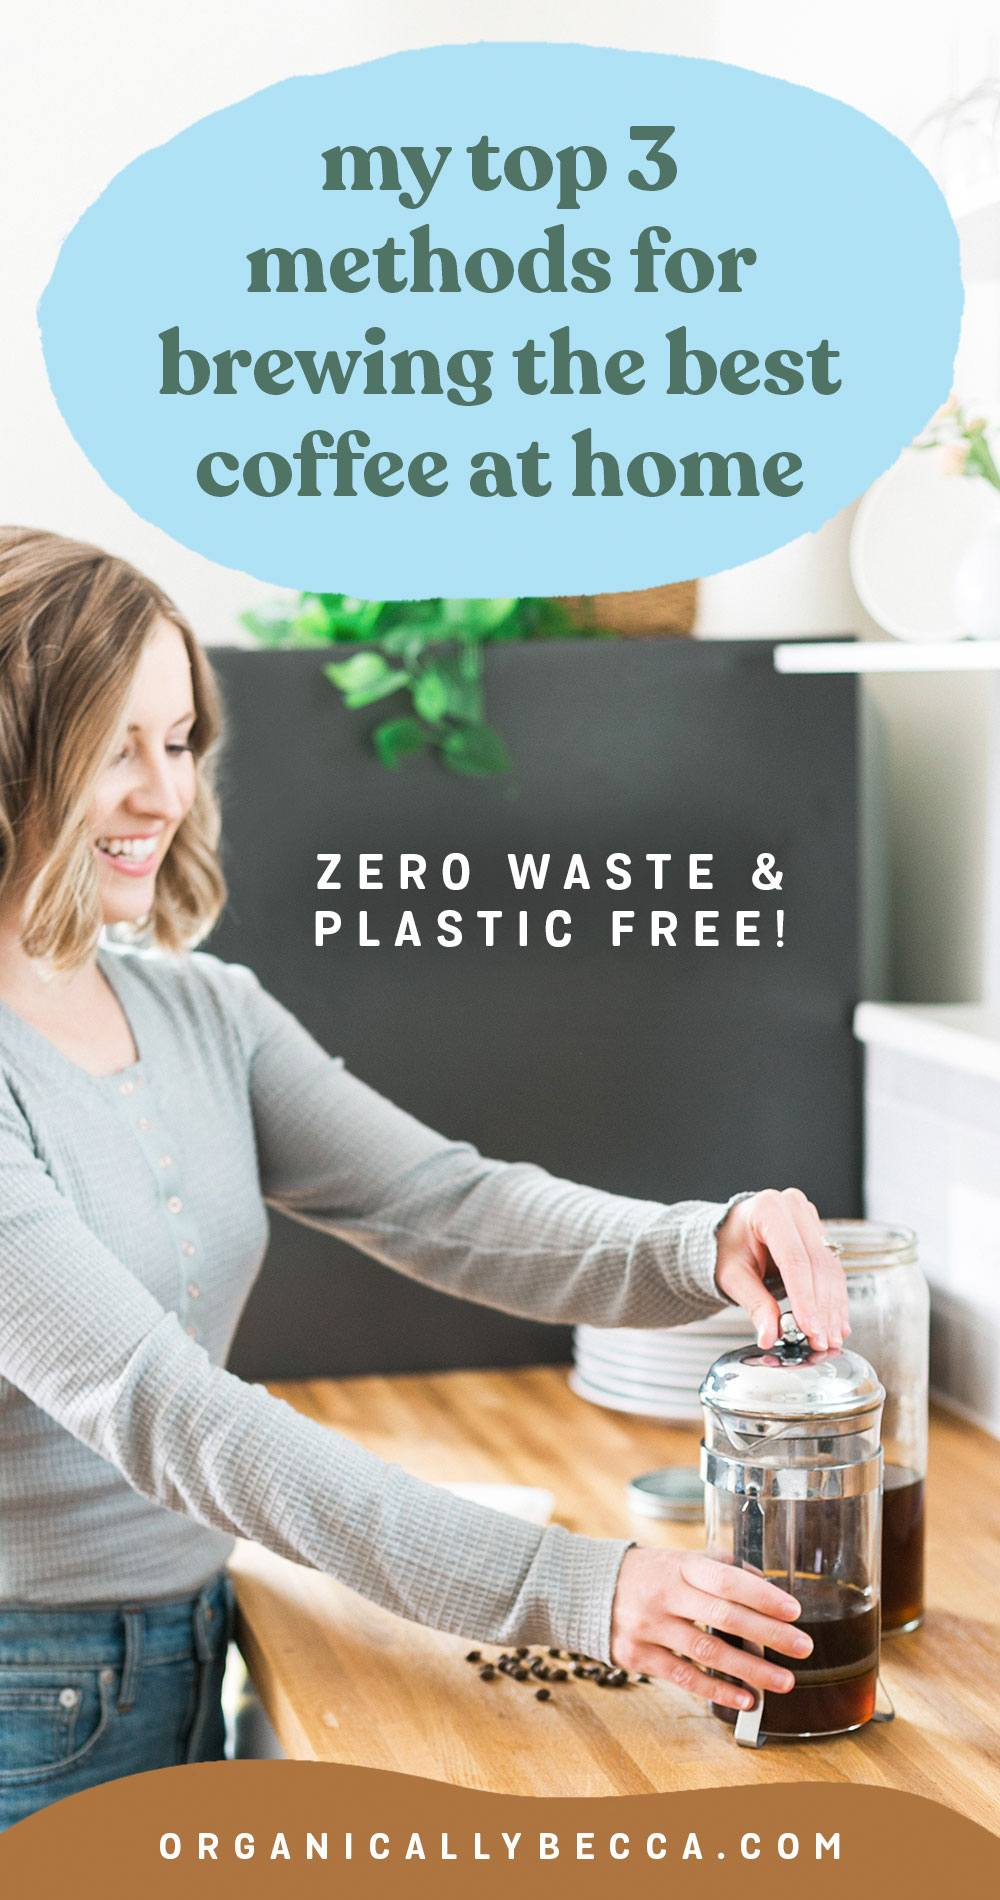 My 3 Favorite Zero Waste, Plastic Free Methods for Brewing Coffee at Home